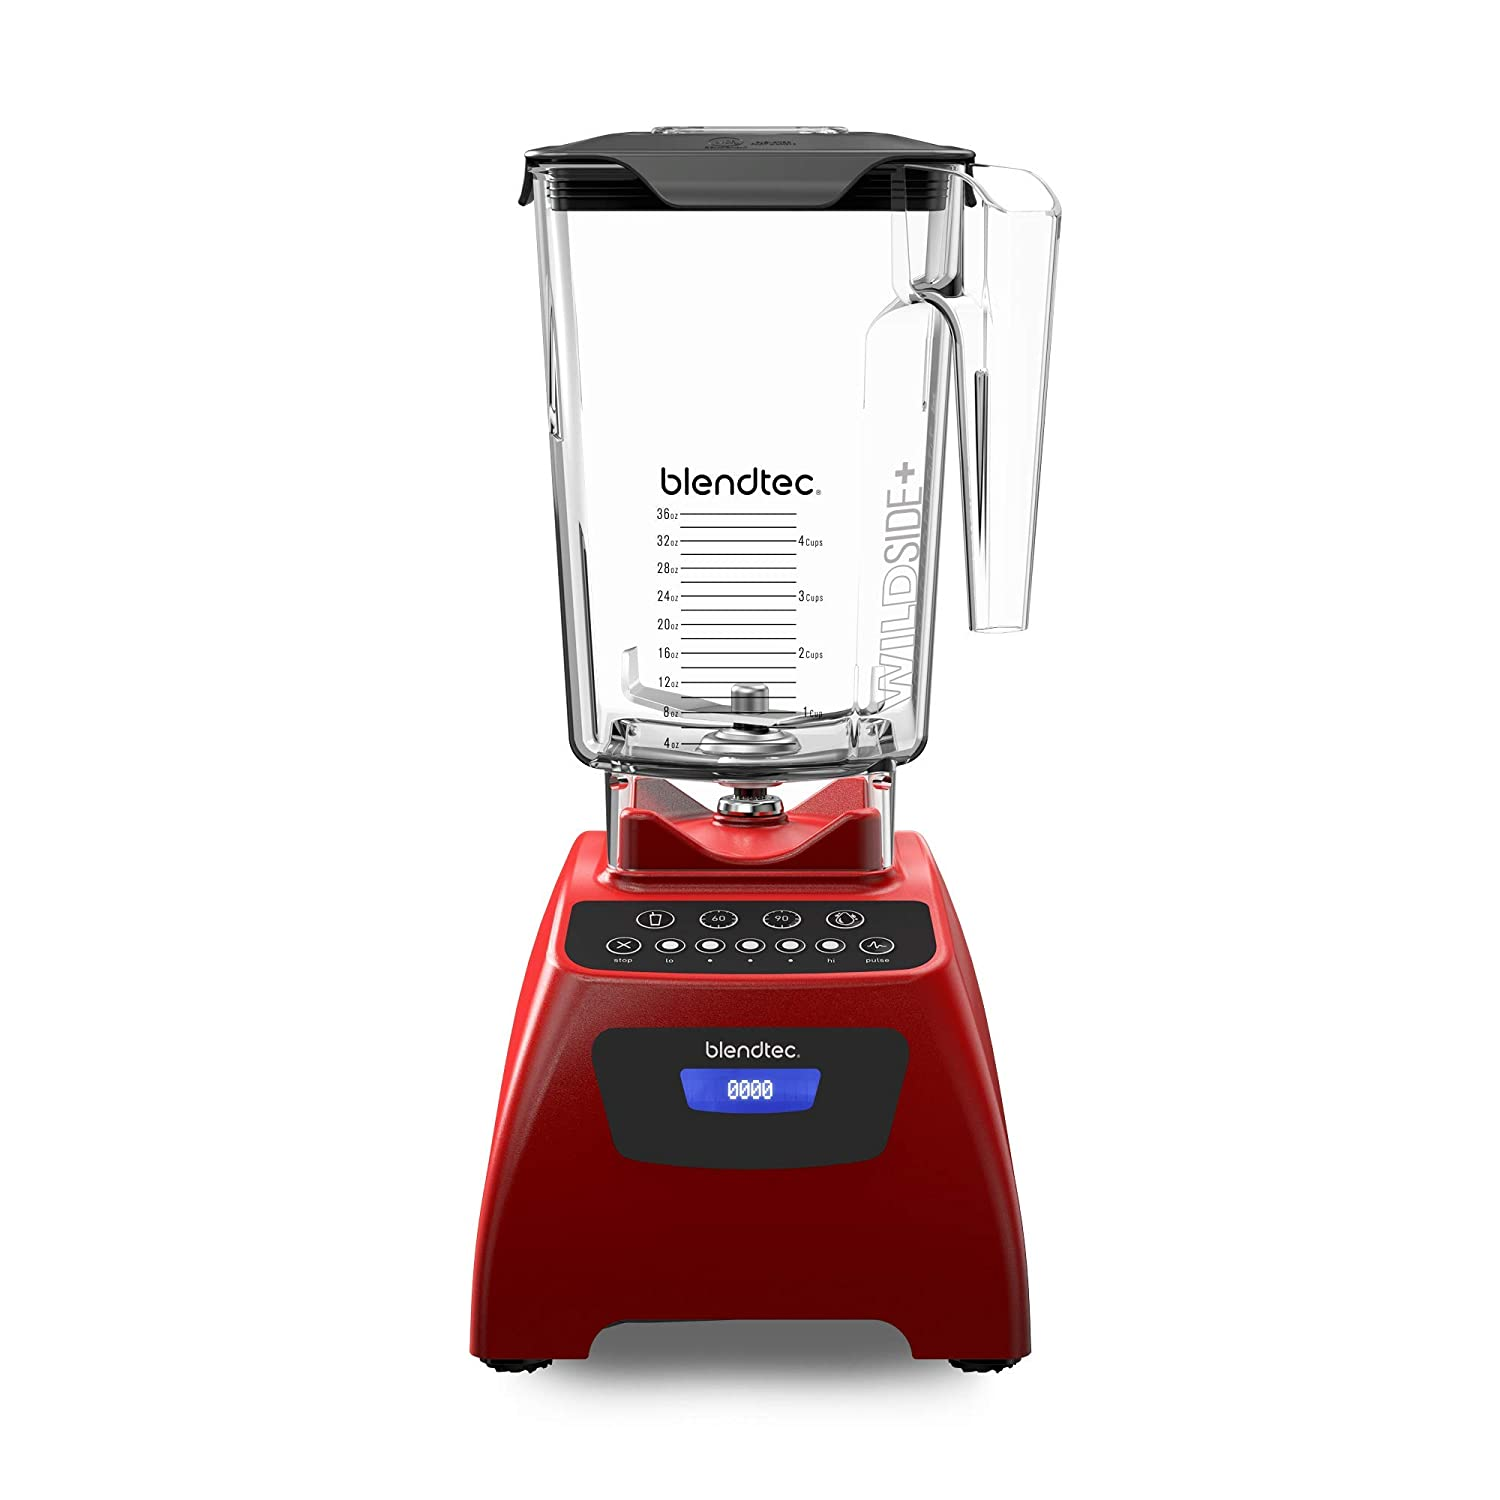 Blendtec Classic 575 Blender - WildSide+ Jar (90 oz) - Professional-Grade Power - Self-Cleaning - 4 Pre-programmed Cycles - 5-Speeds - Poppy Red